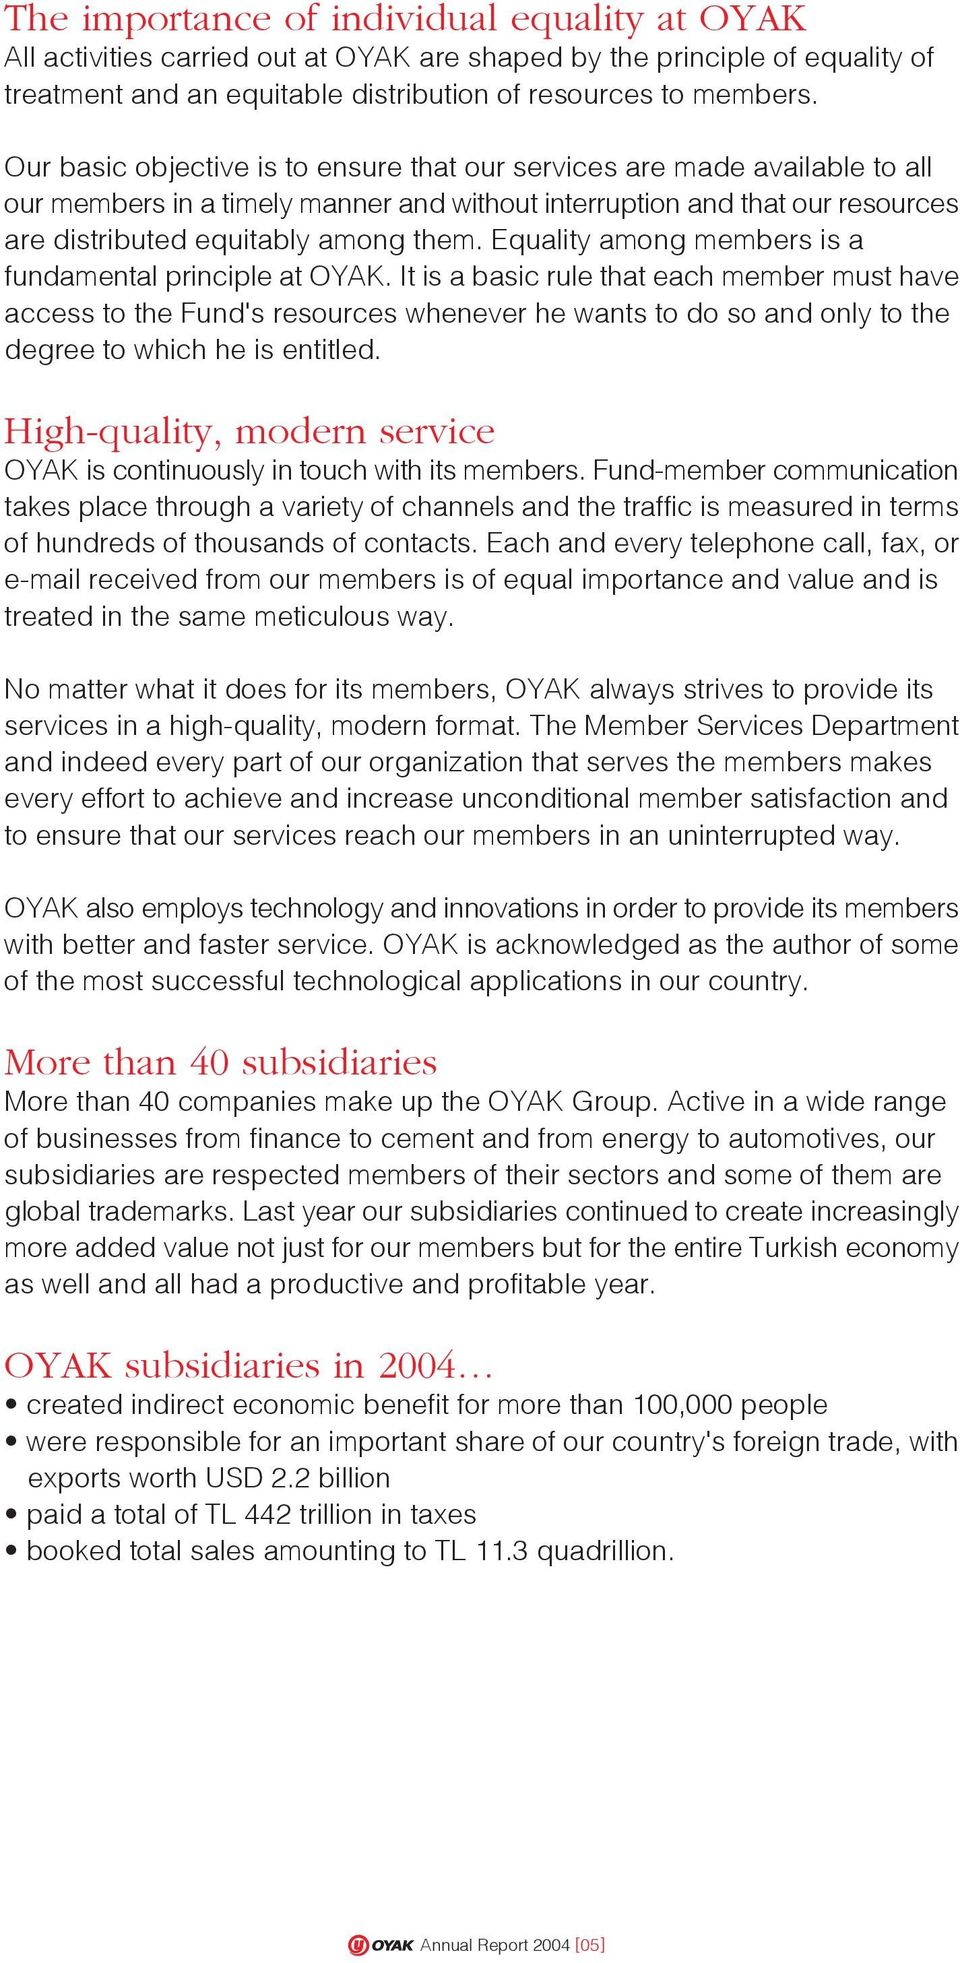 Equality among members is a fundamental principle at OYAK.